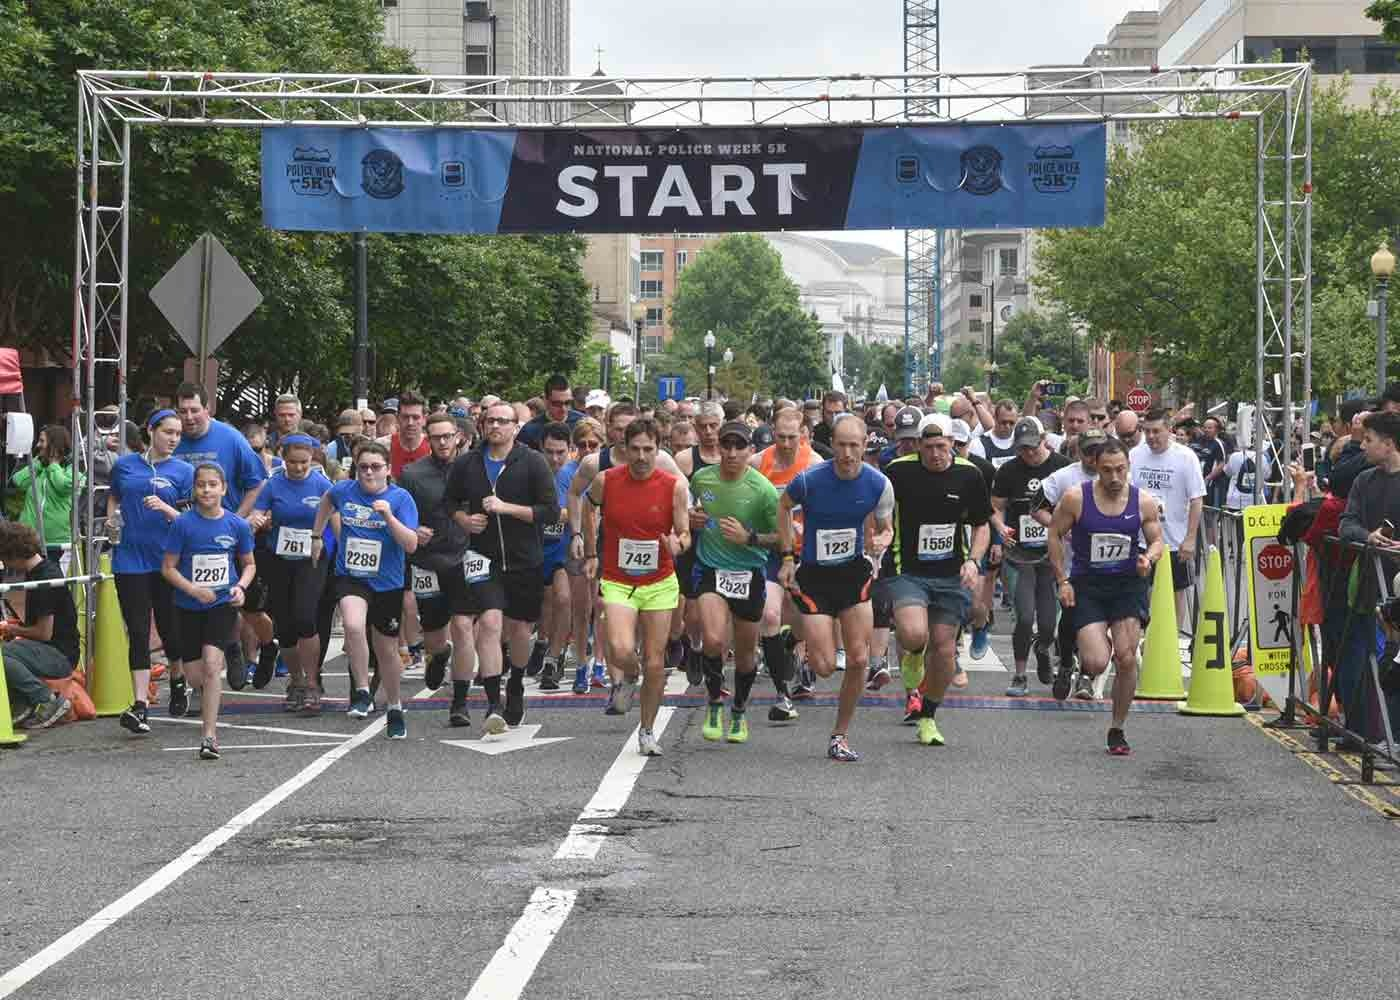 Runners begin the National Police Week 5K on May 11, 2019, in Washington, D.C.